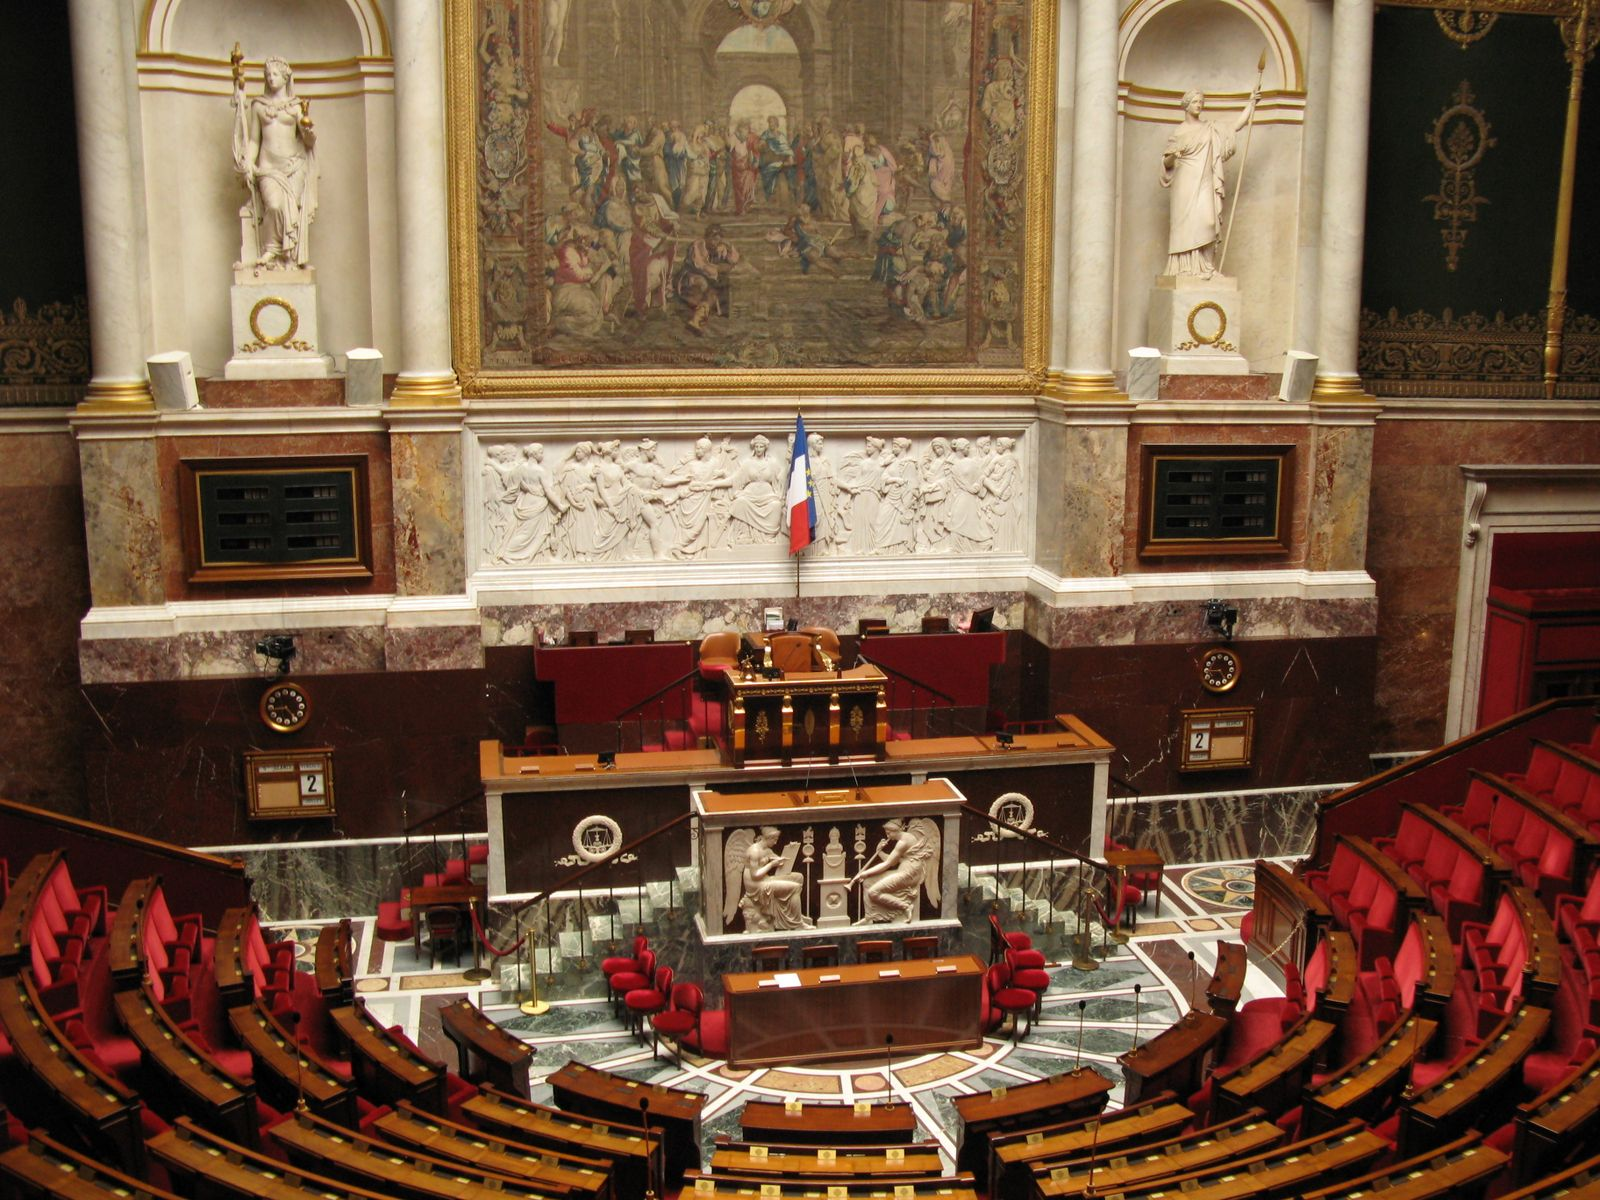 Vue du centre de l'hémicycle du Palais Bourbon, à Paris